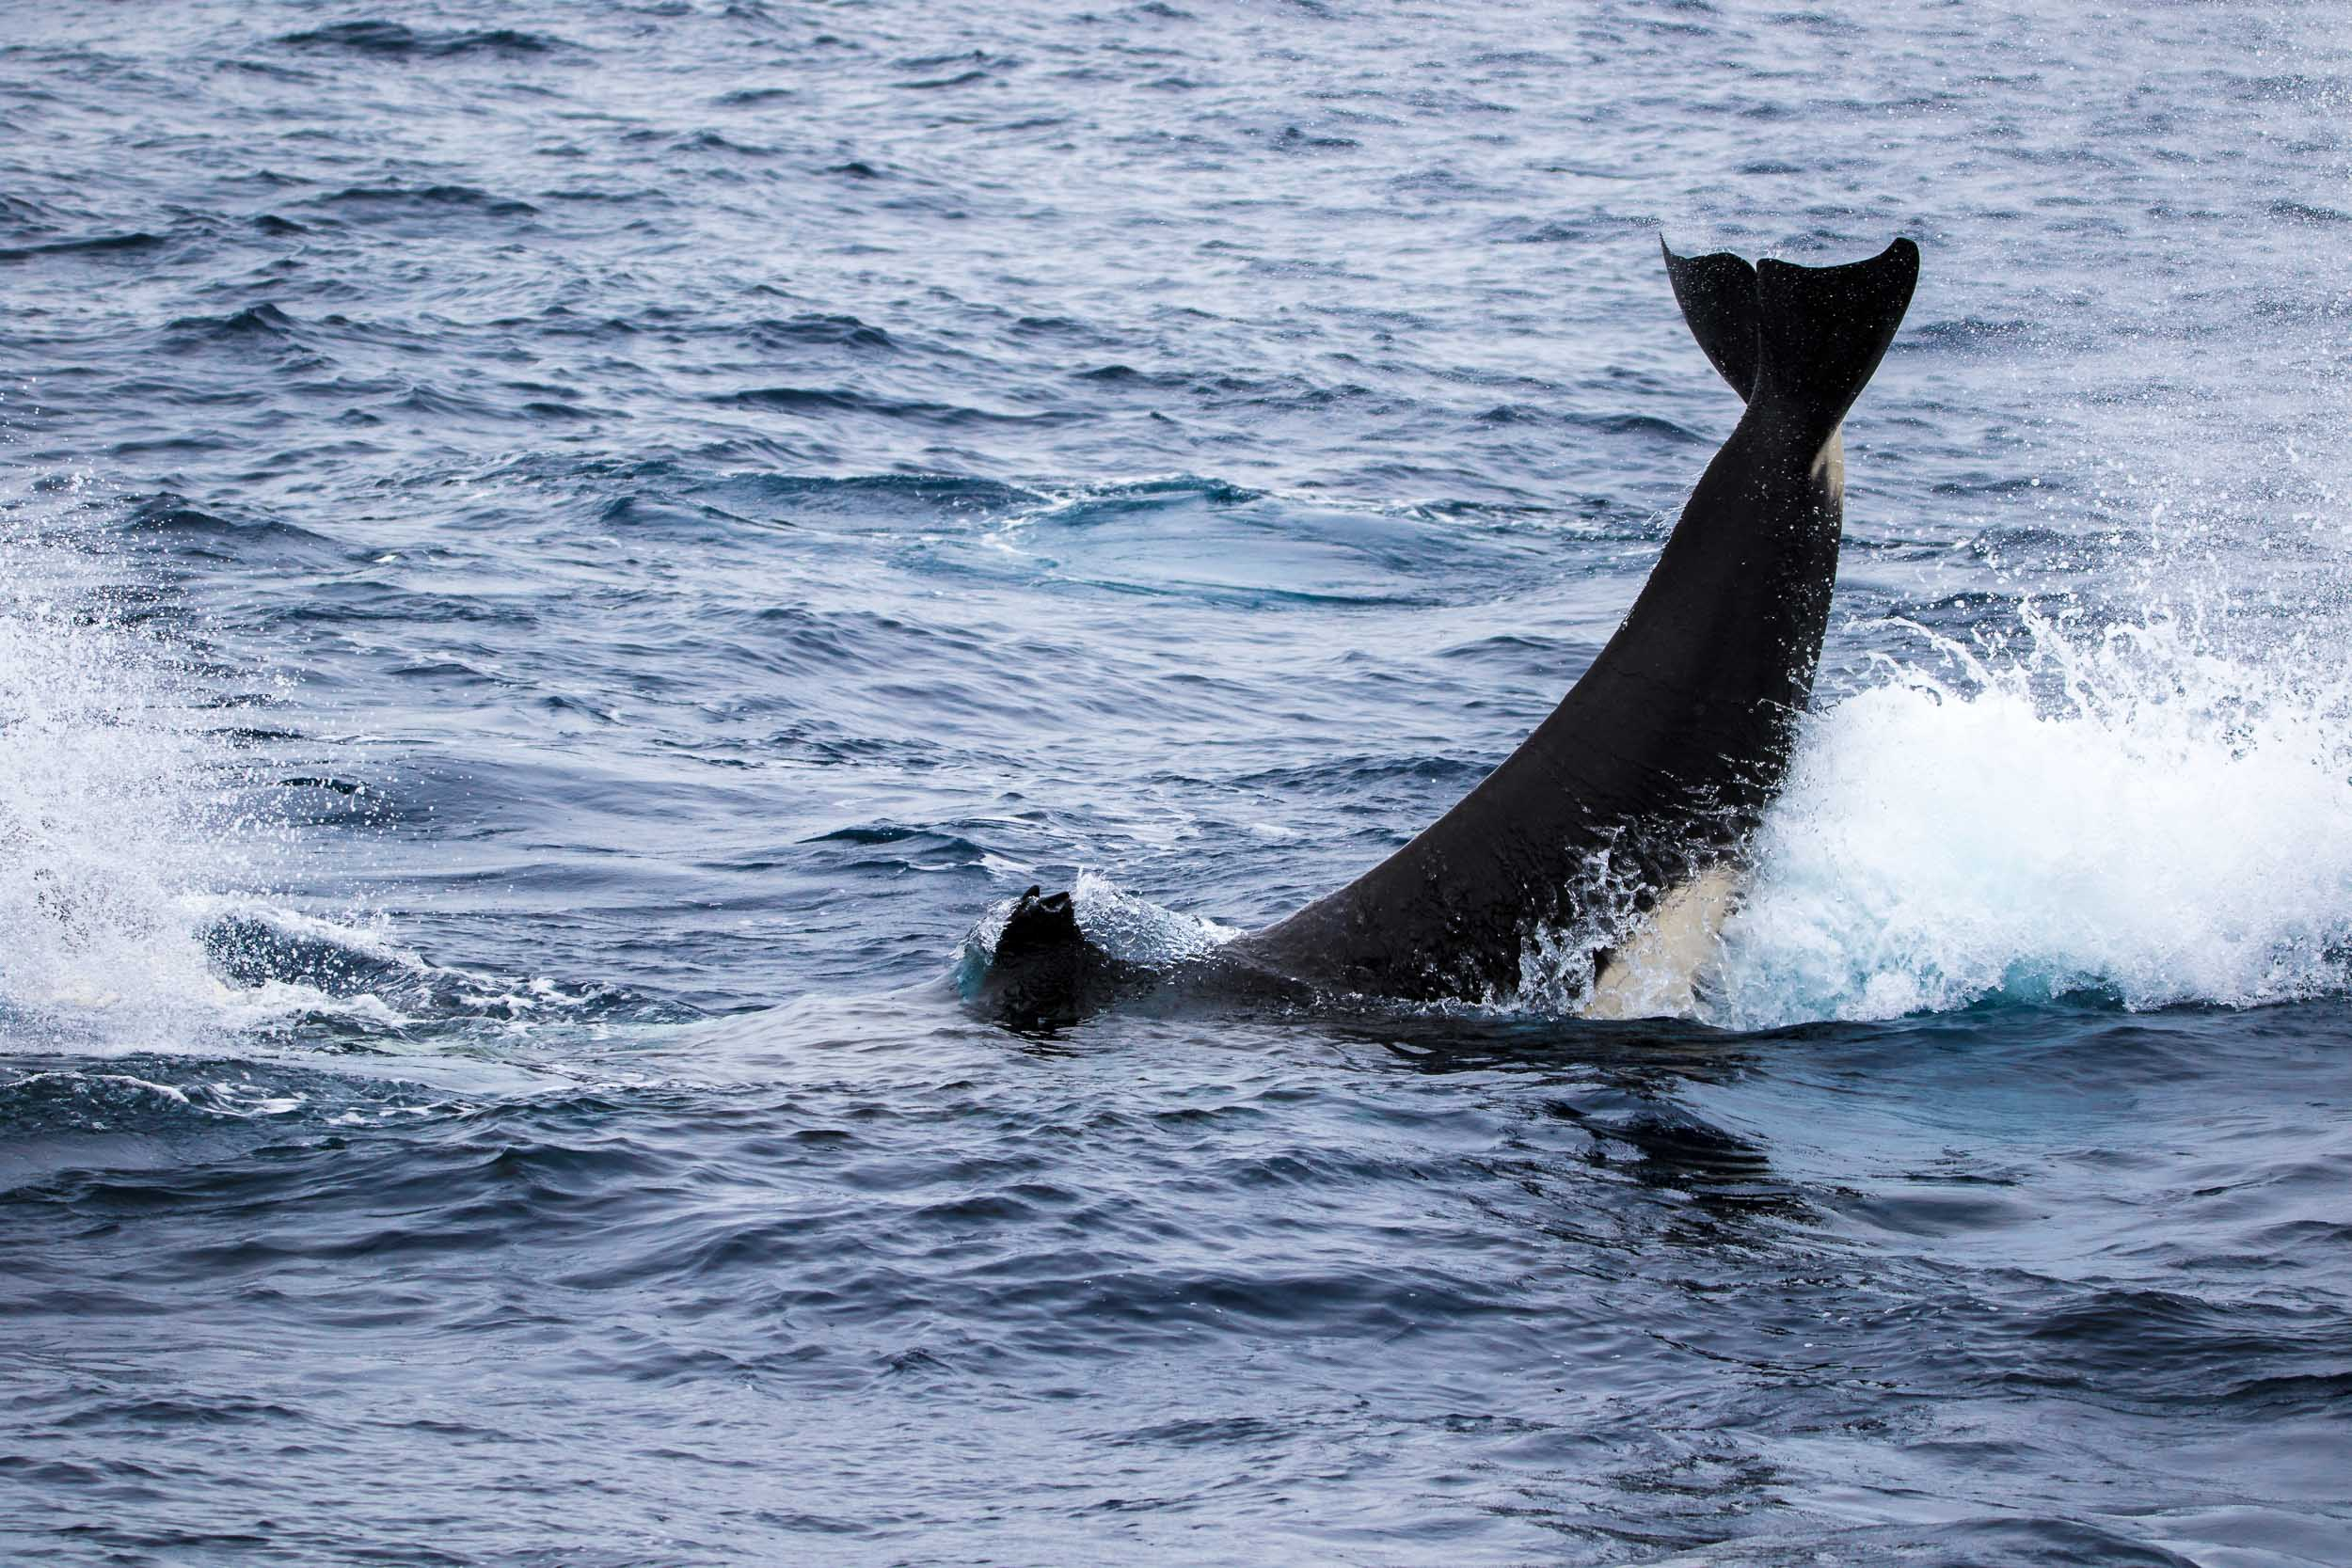 Killer whale tail slap, Bremer Bay, Western Australia 2